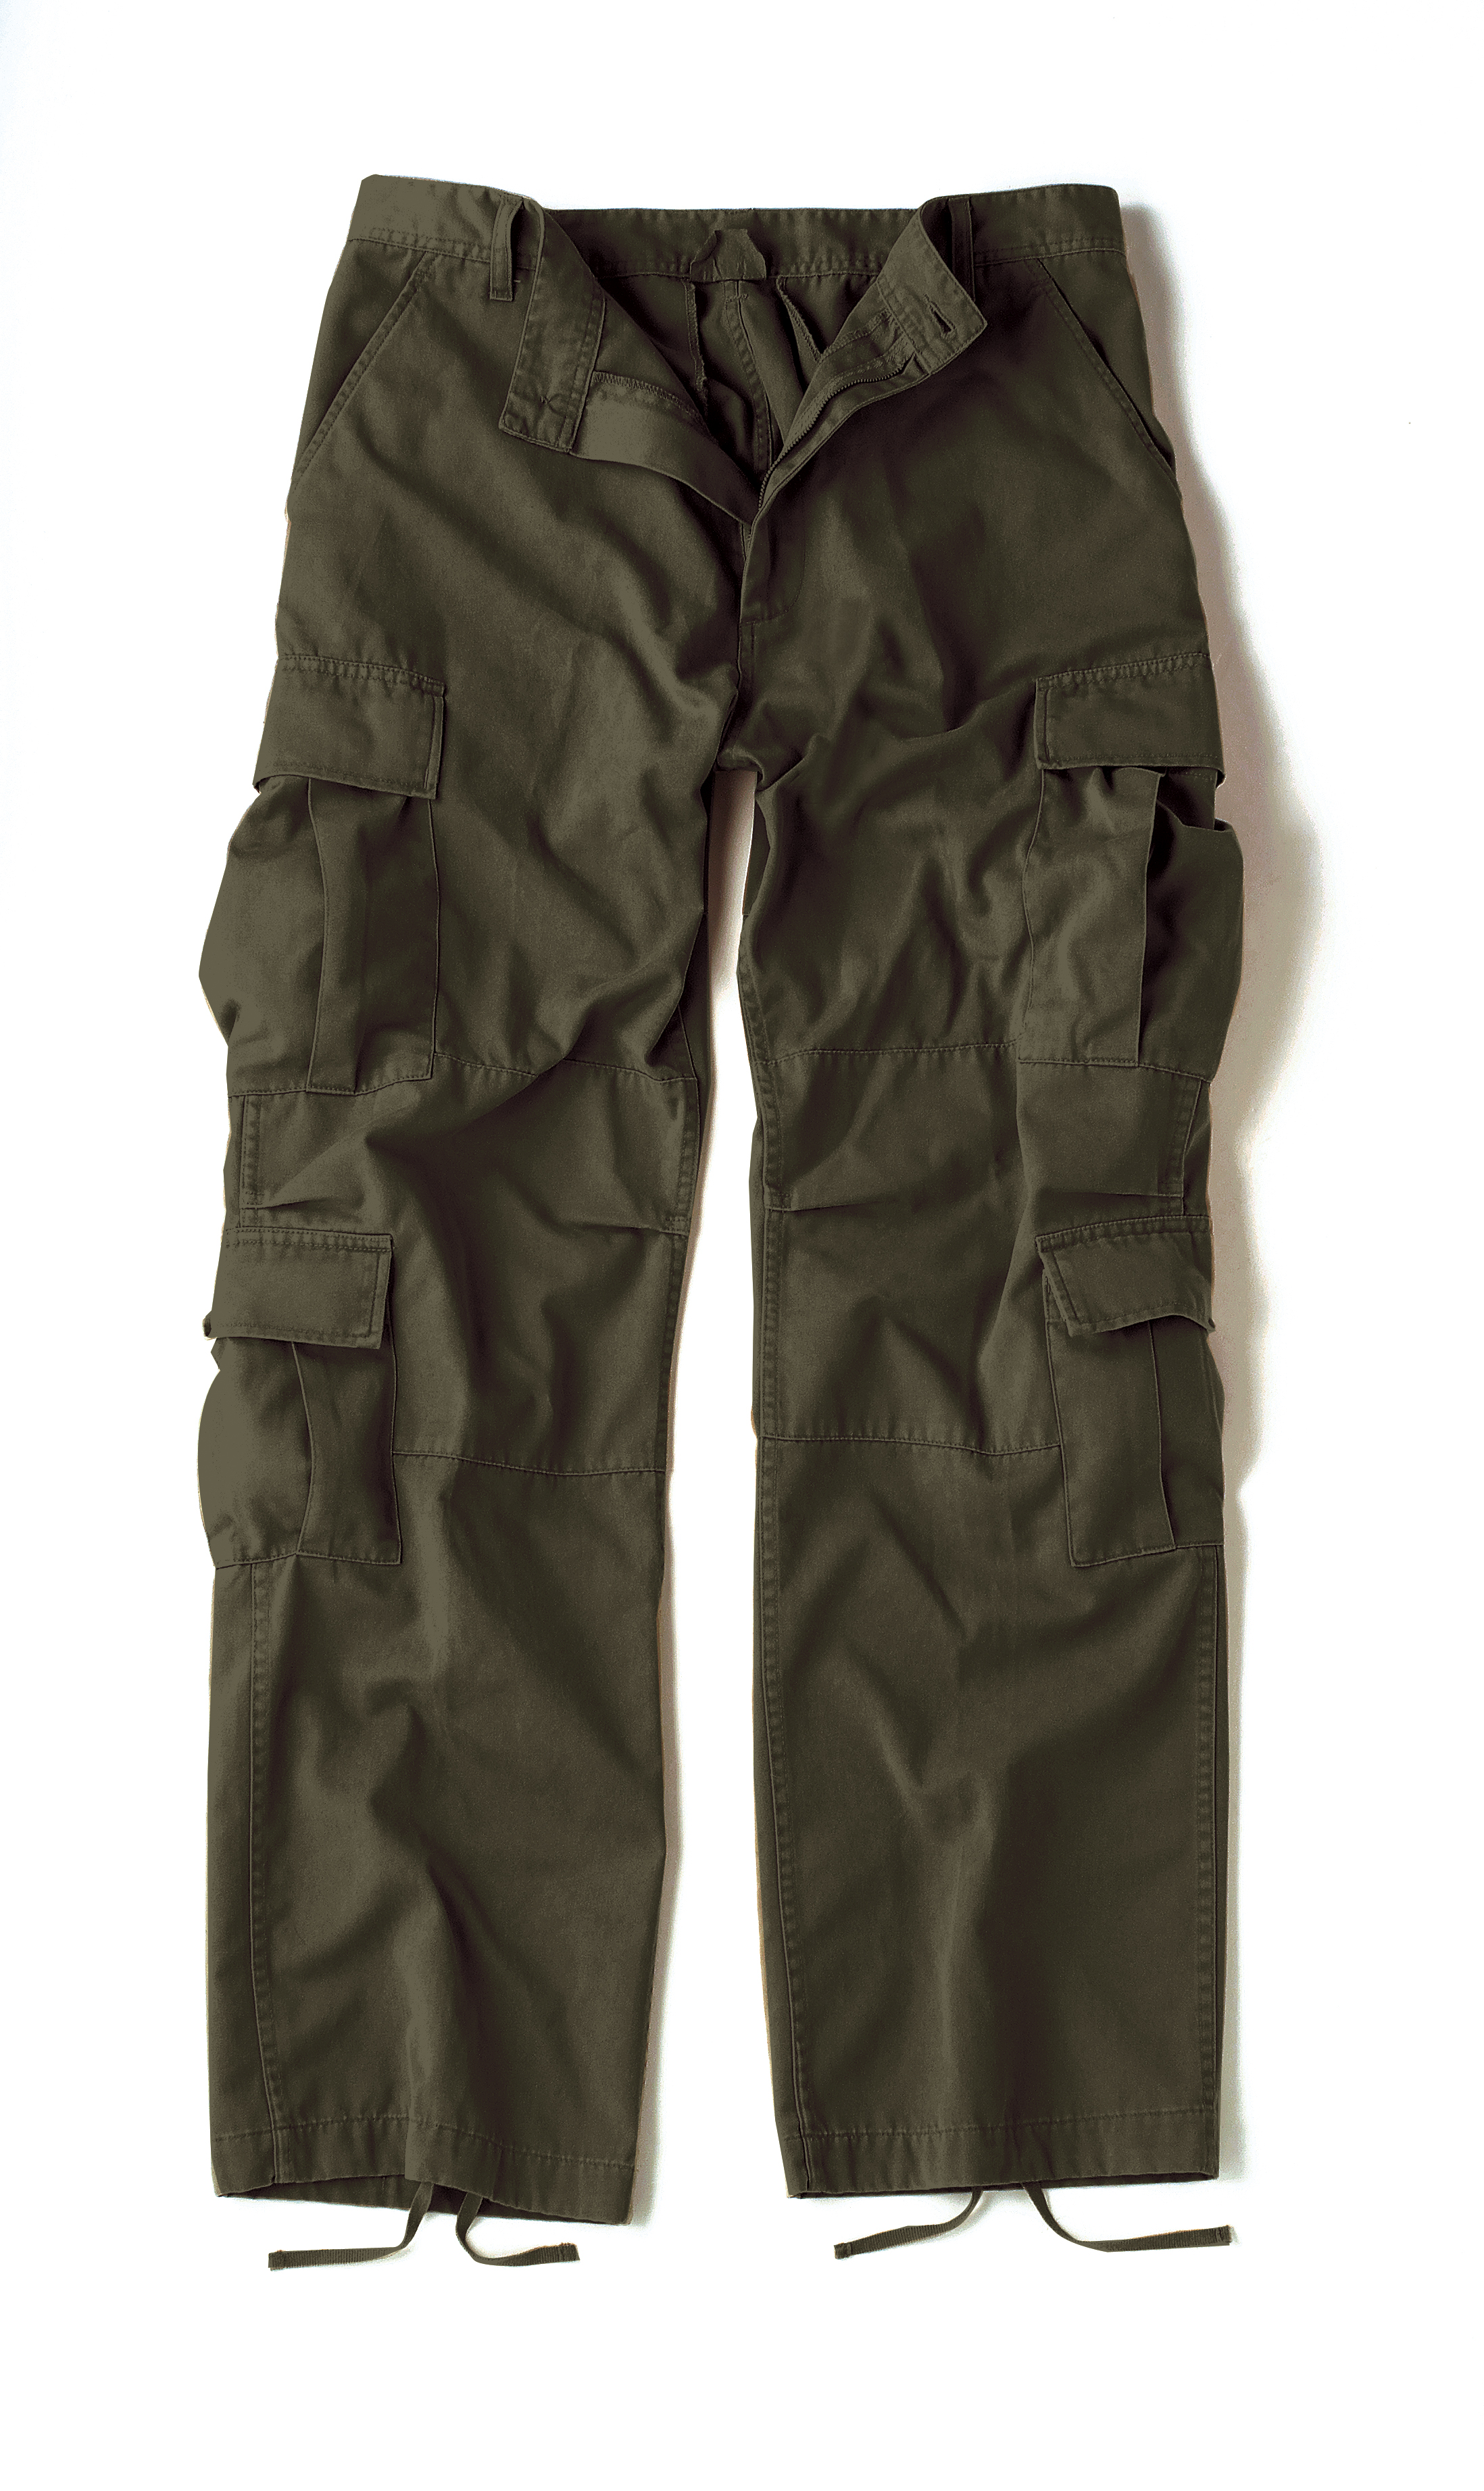 Rothco Paratrooper Fatigue Pants